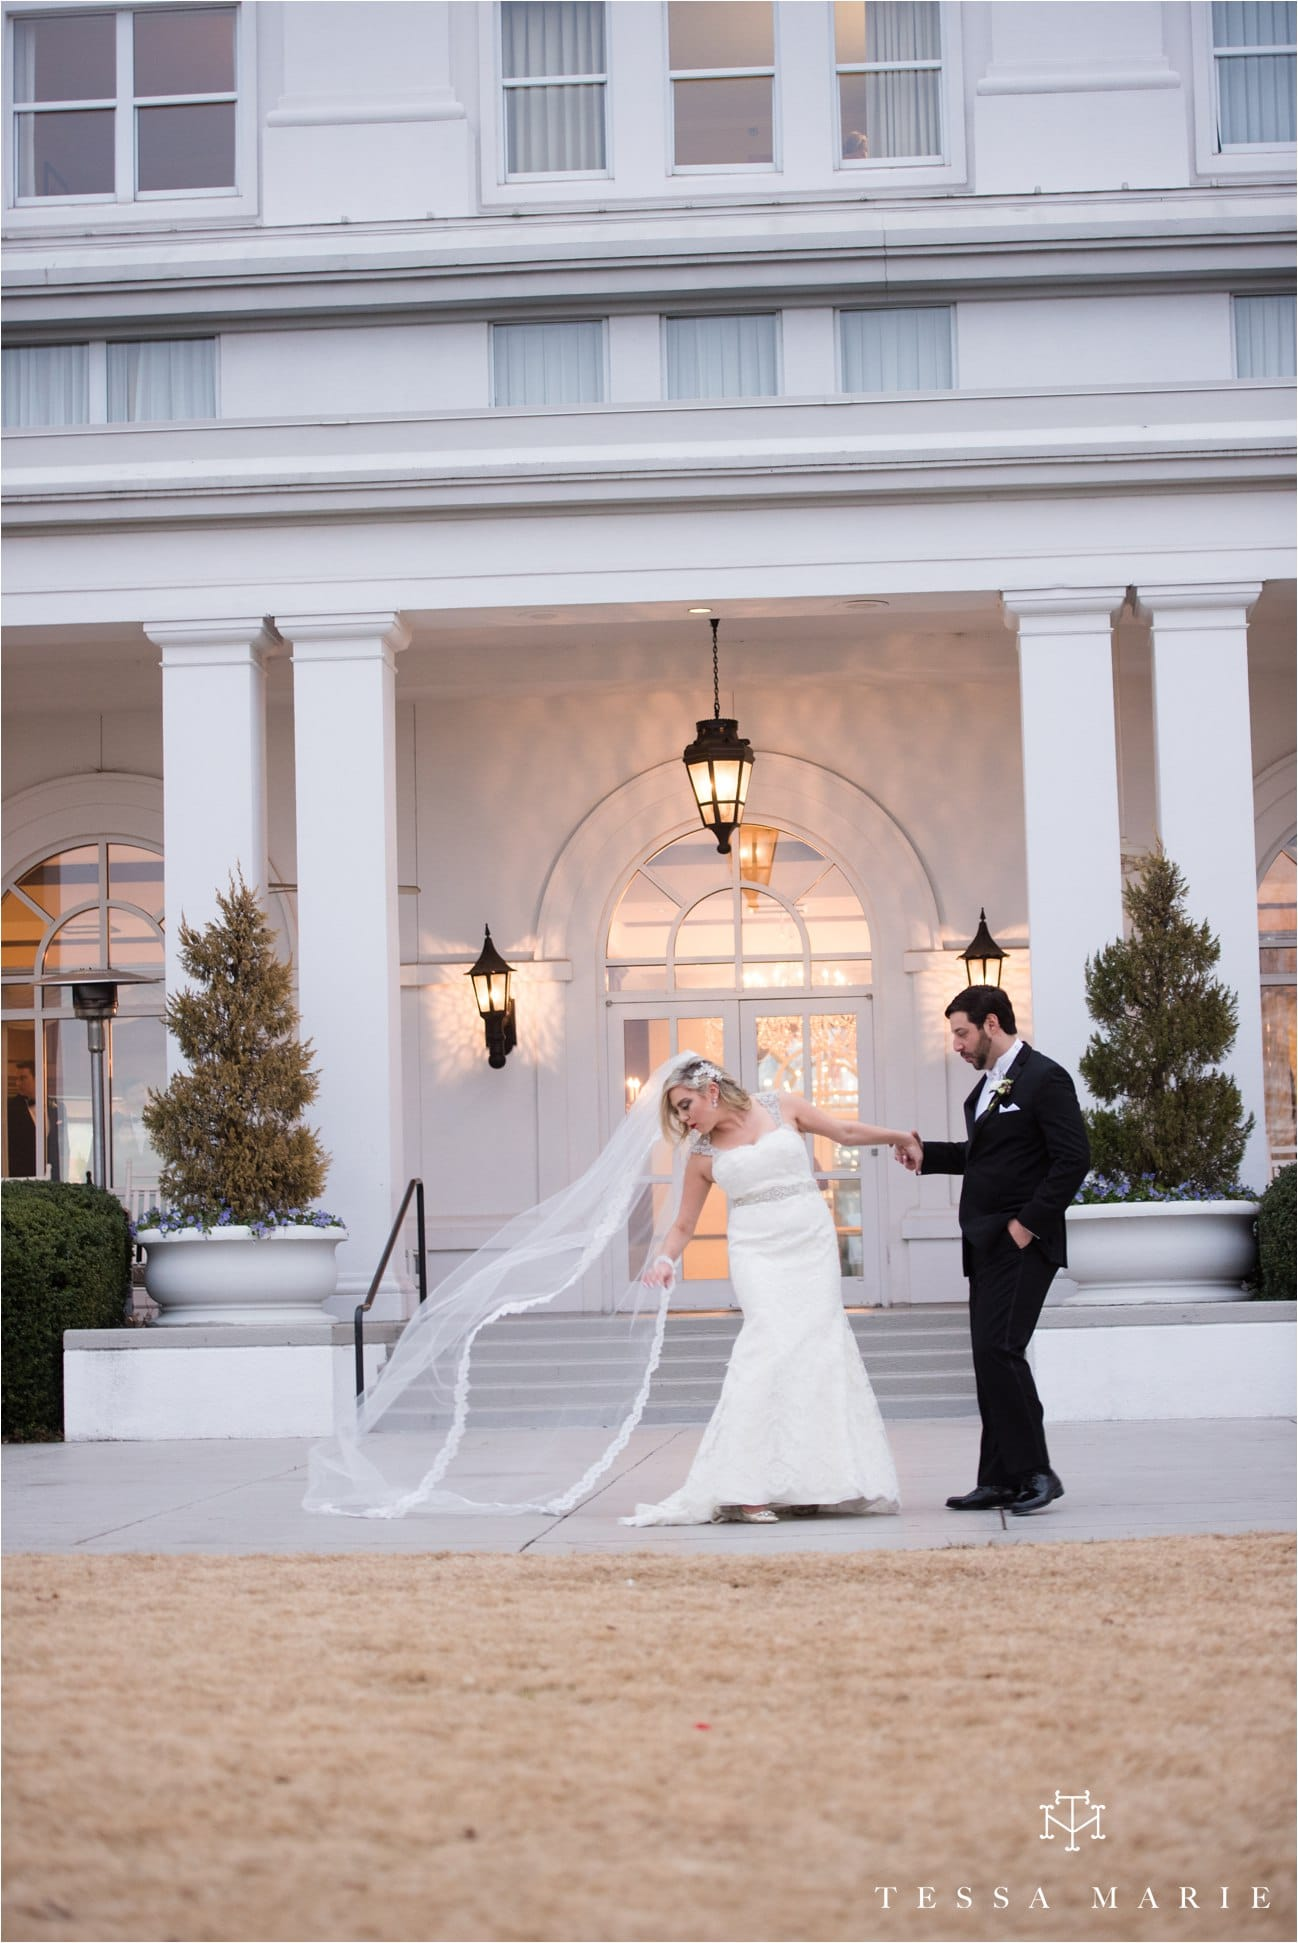 tessa_marie_brickyard_marietta_new_years_wedding_pictures_candid_emotional_wedding_portraits_0043